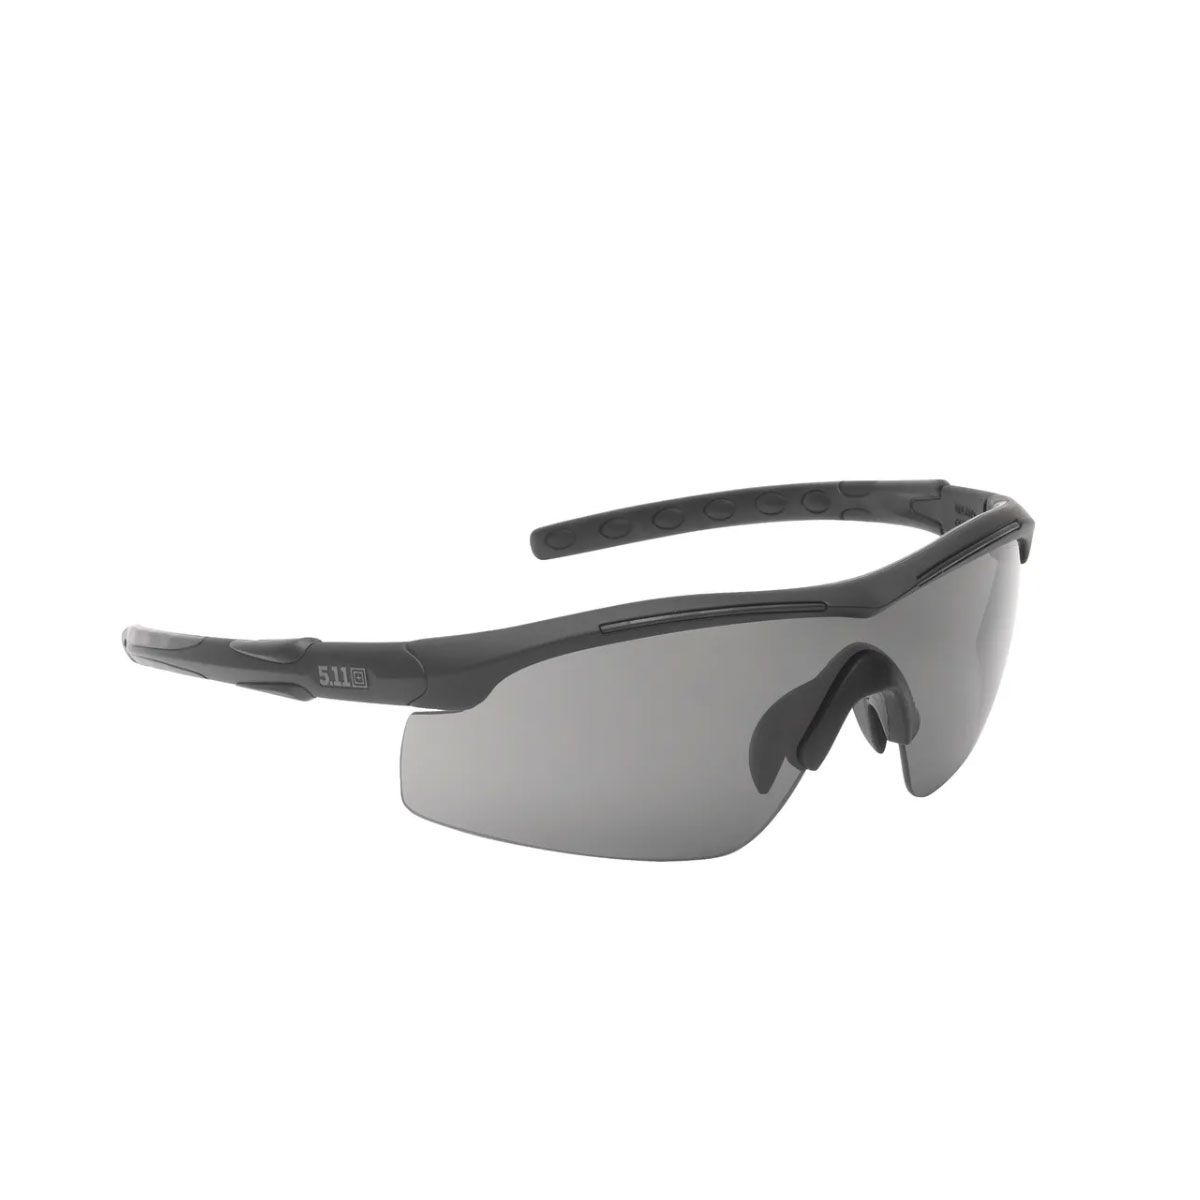 Óculos 5.11 Tactical Raid Eyewear Black